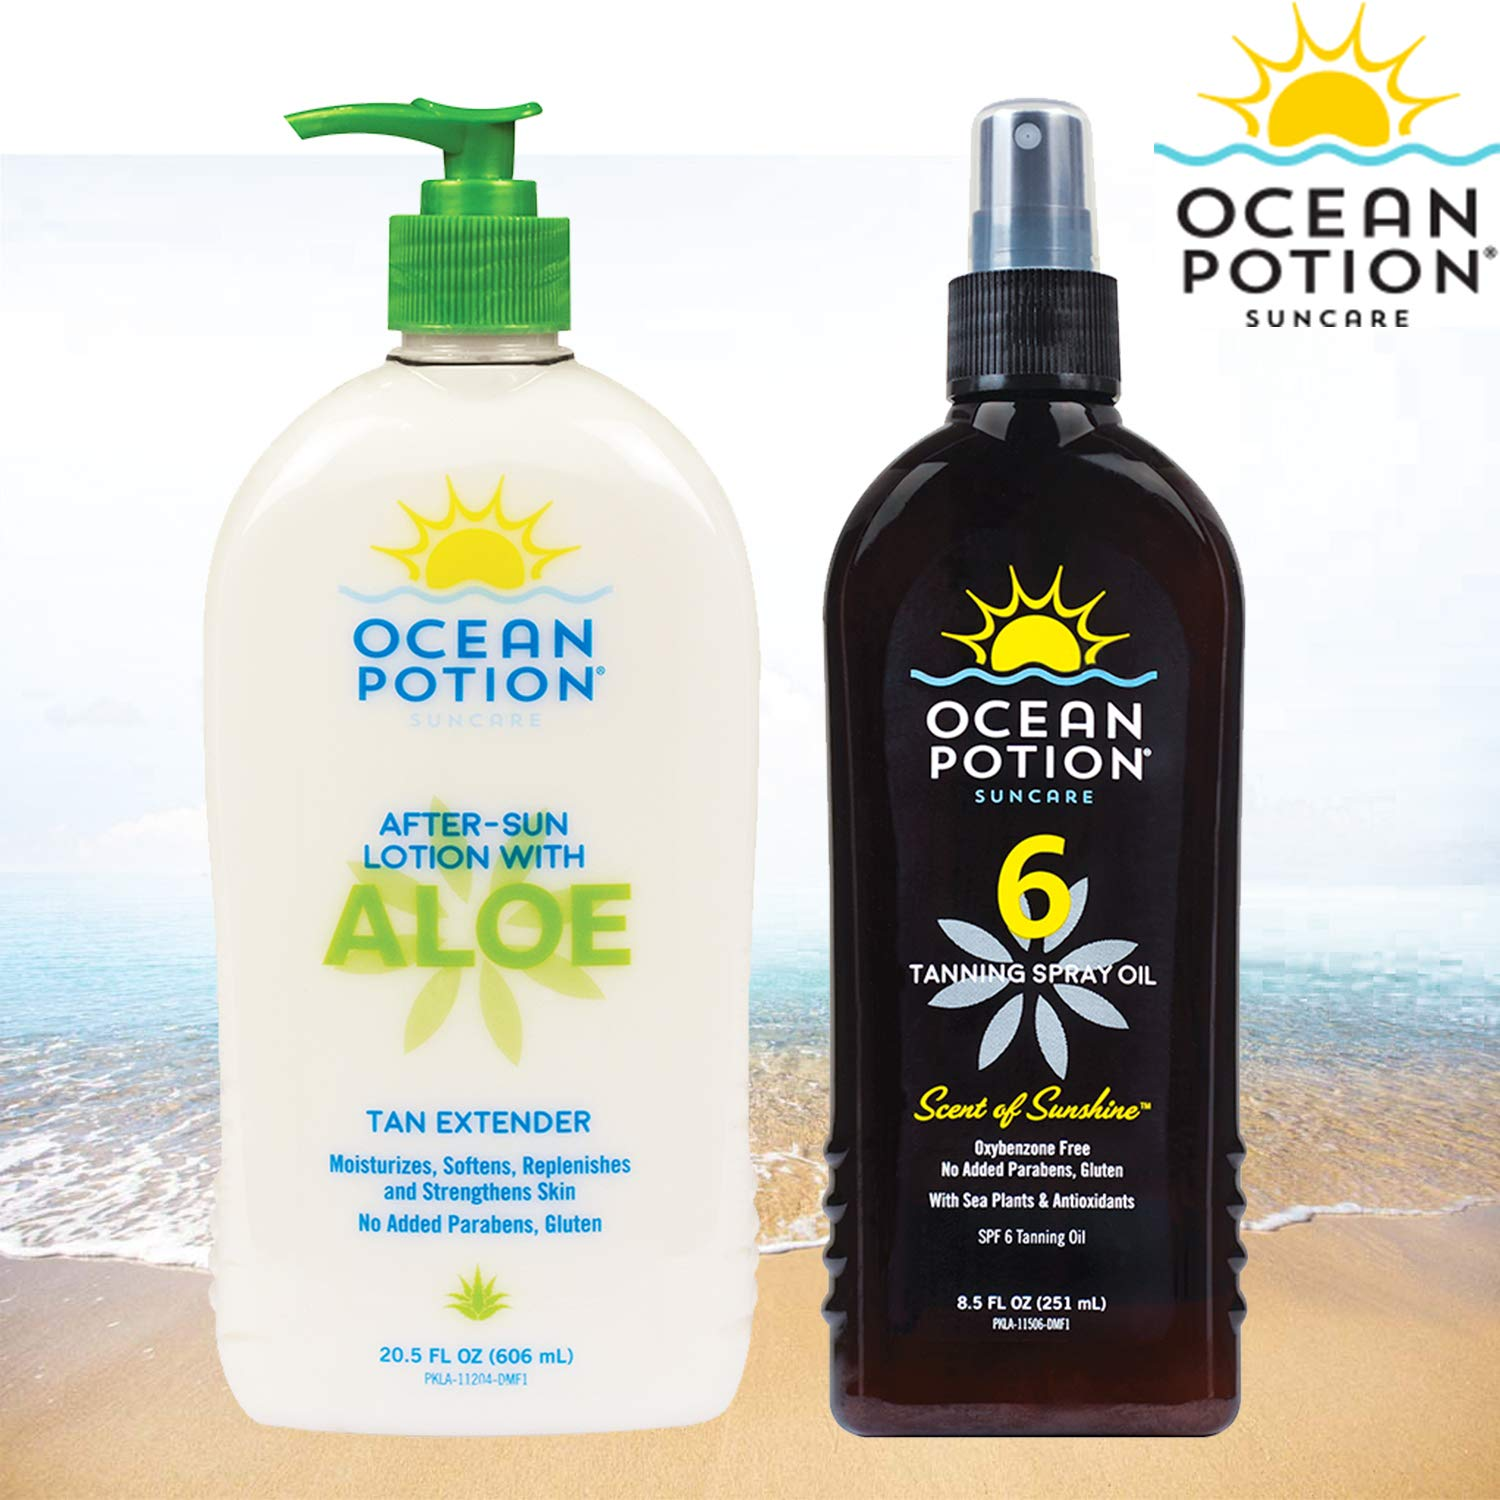 OP 2 Pack Combo, Aloe After Sun Lotion in a 20.5 OZ Push Pump Bottle, with an 8.5 OZ Tanning Spray Oil SPF 6 by Online 24/7 LLC